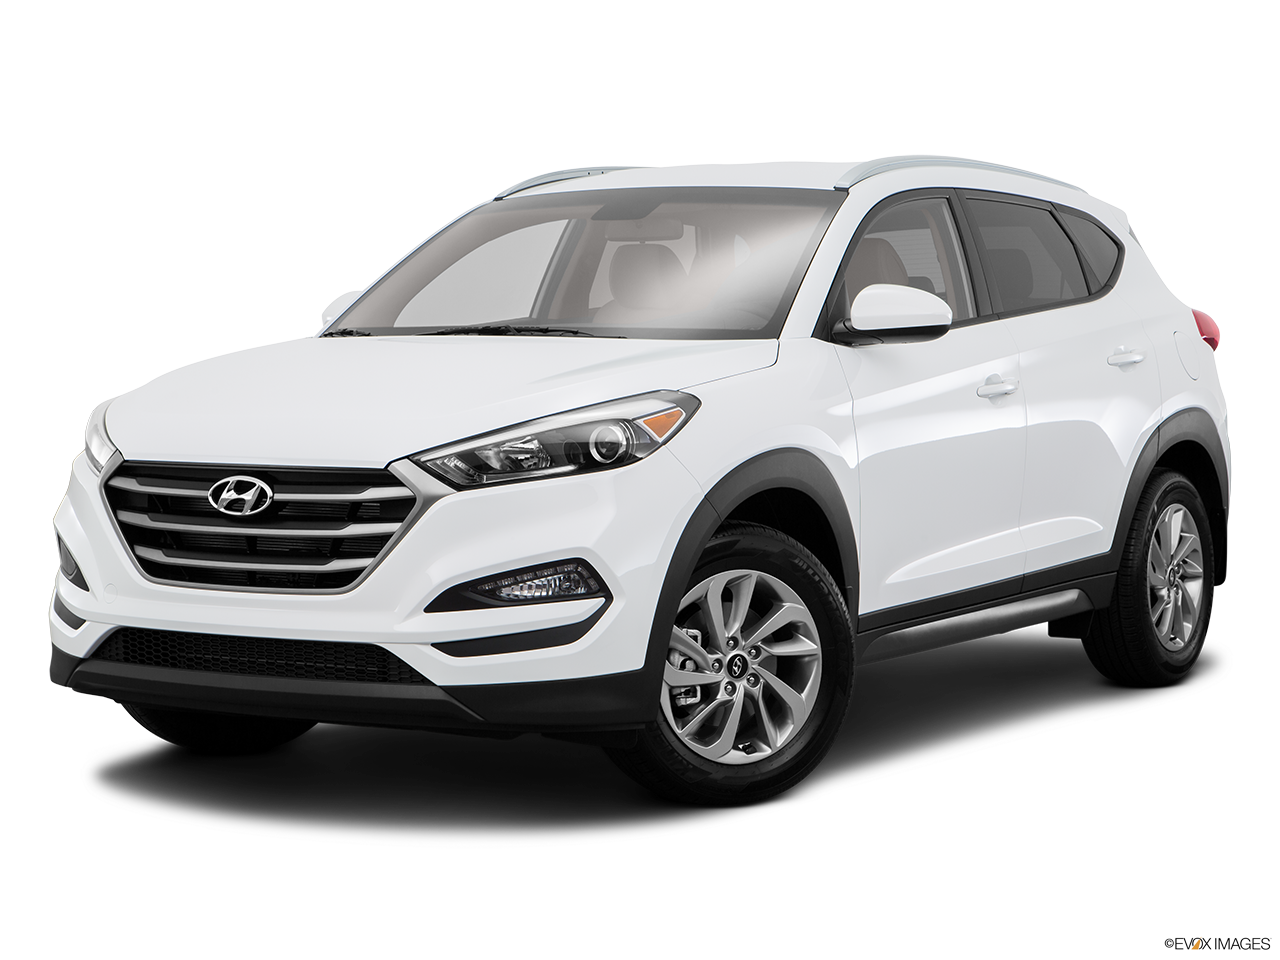 2016 Hyundai Tucson Dealer Serving The Inland Empire